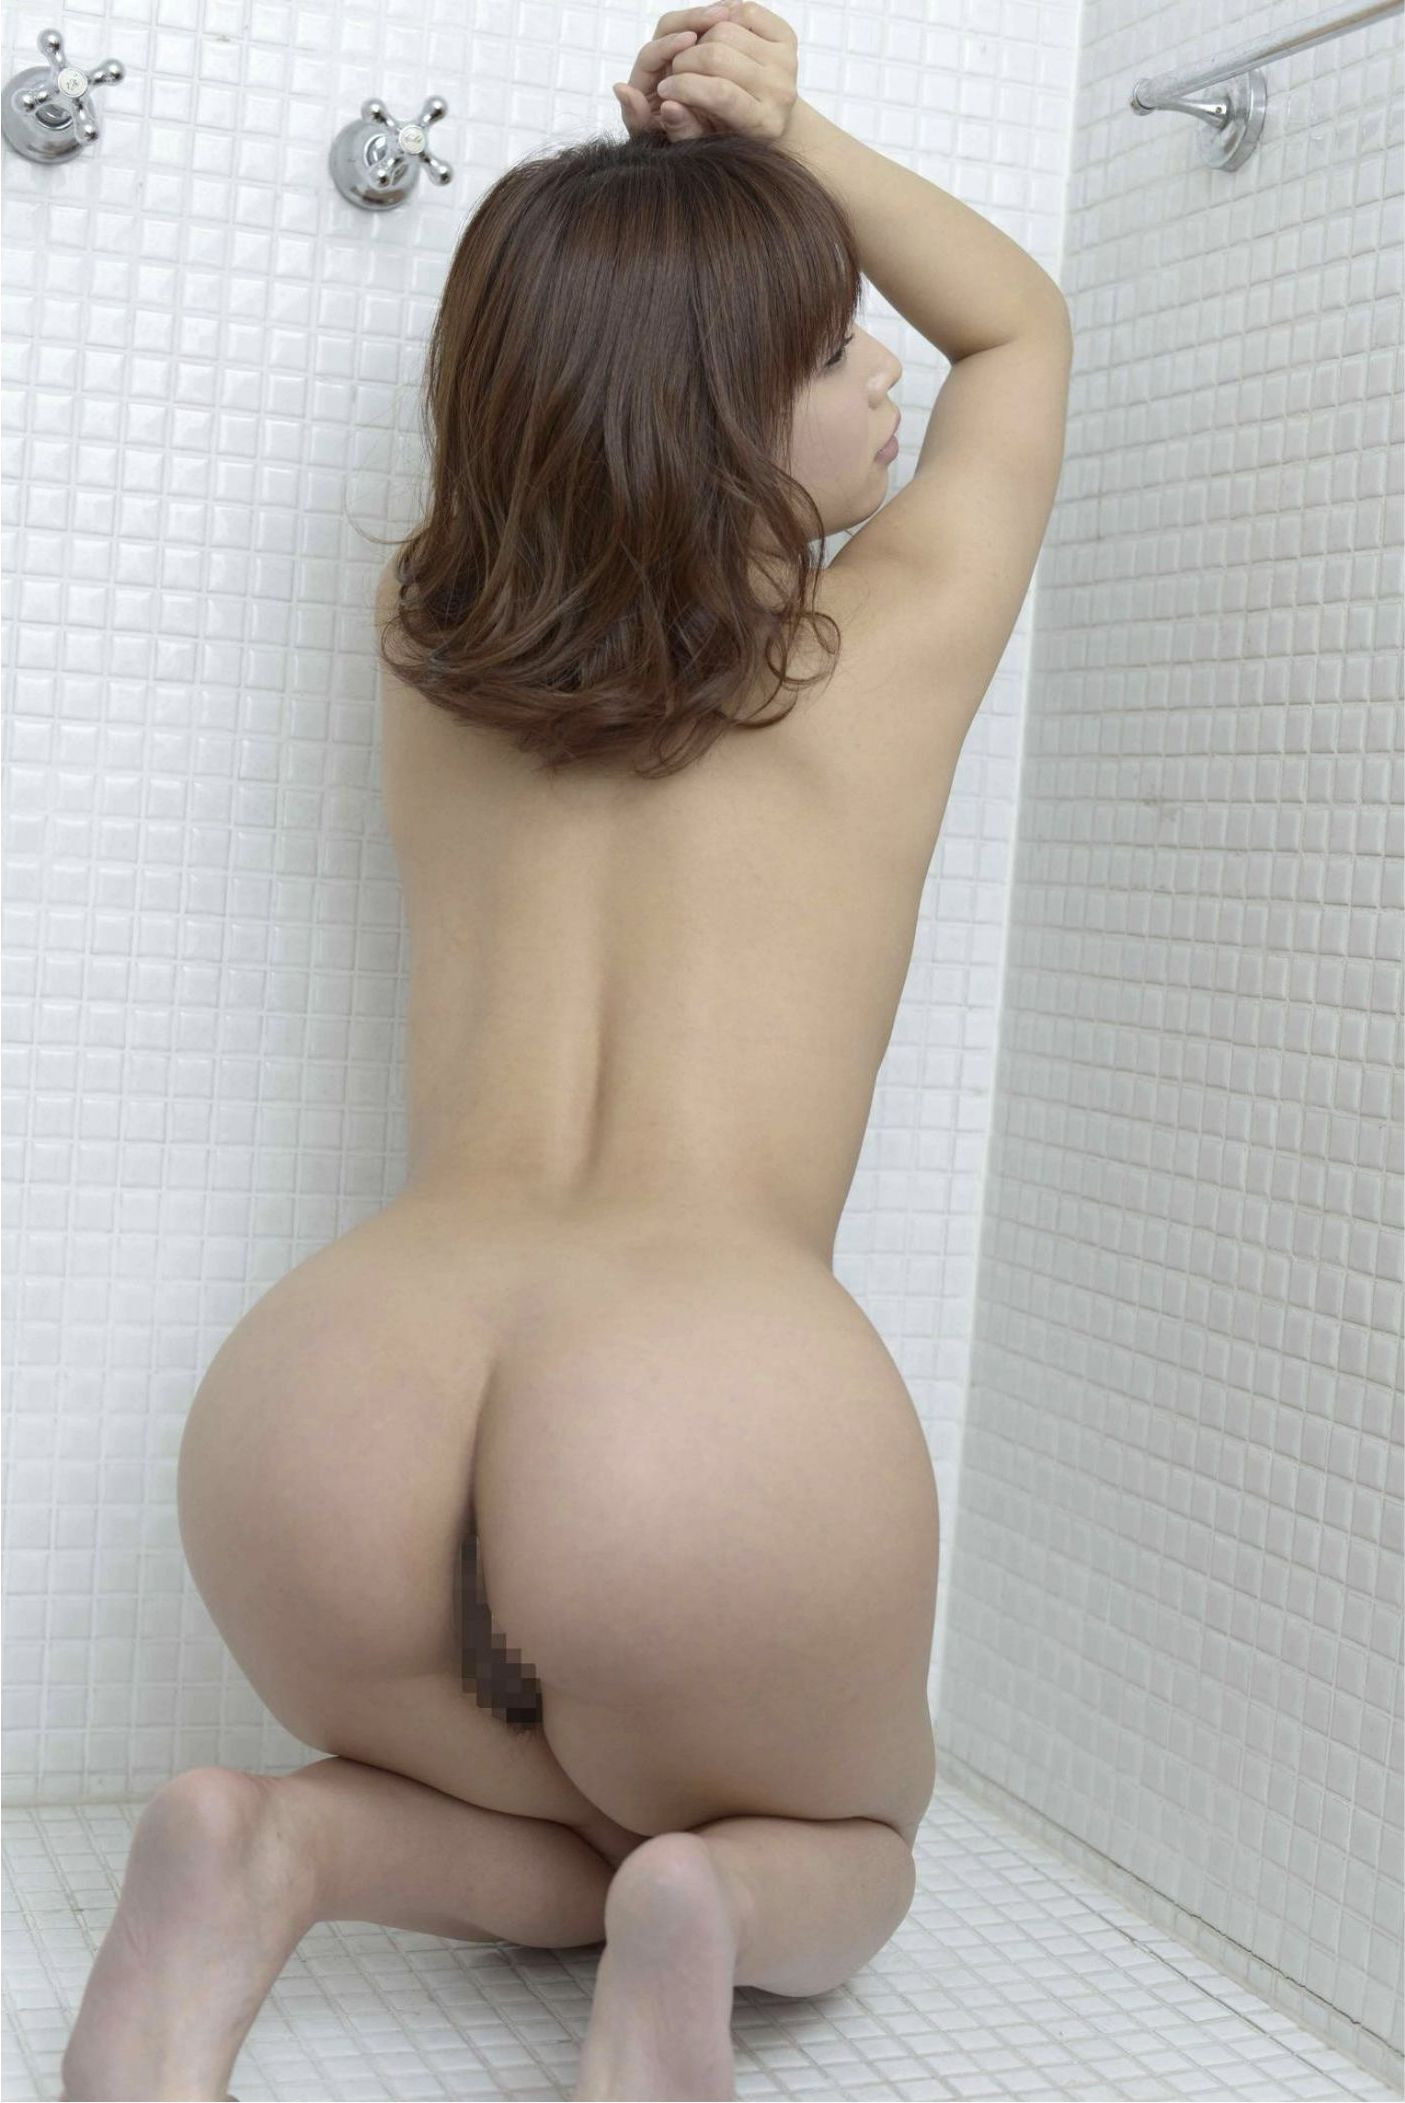 SOFT ON DEMAND GRAVURE COLLECTION 紗倉まな02 photo 112